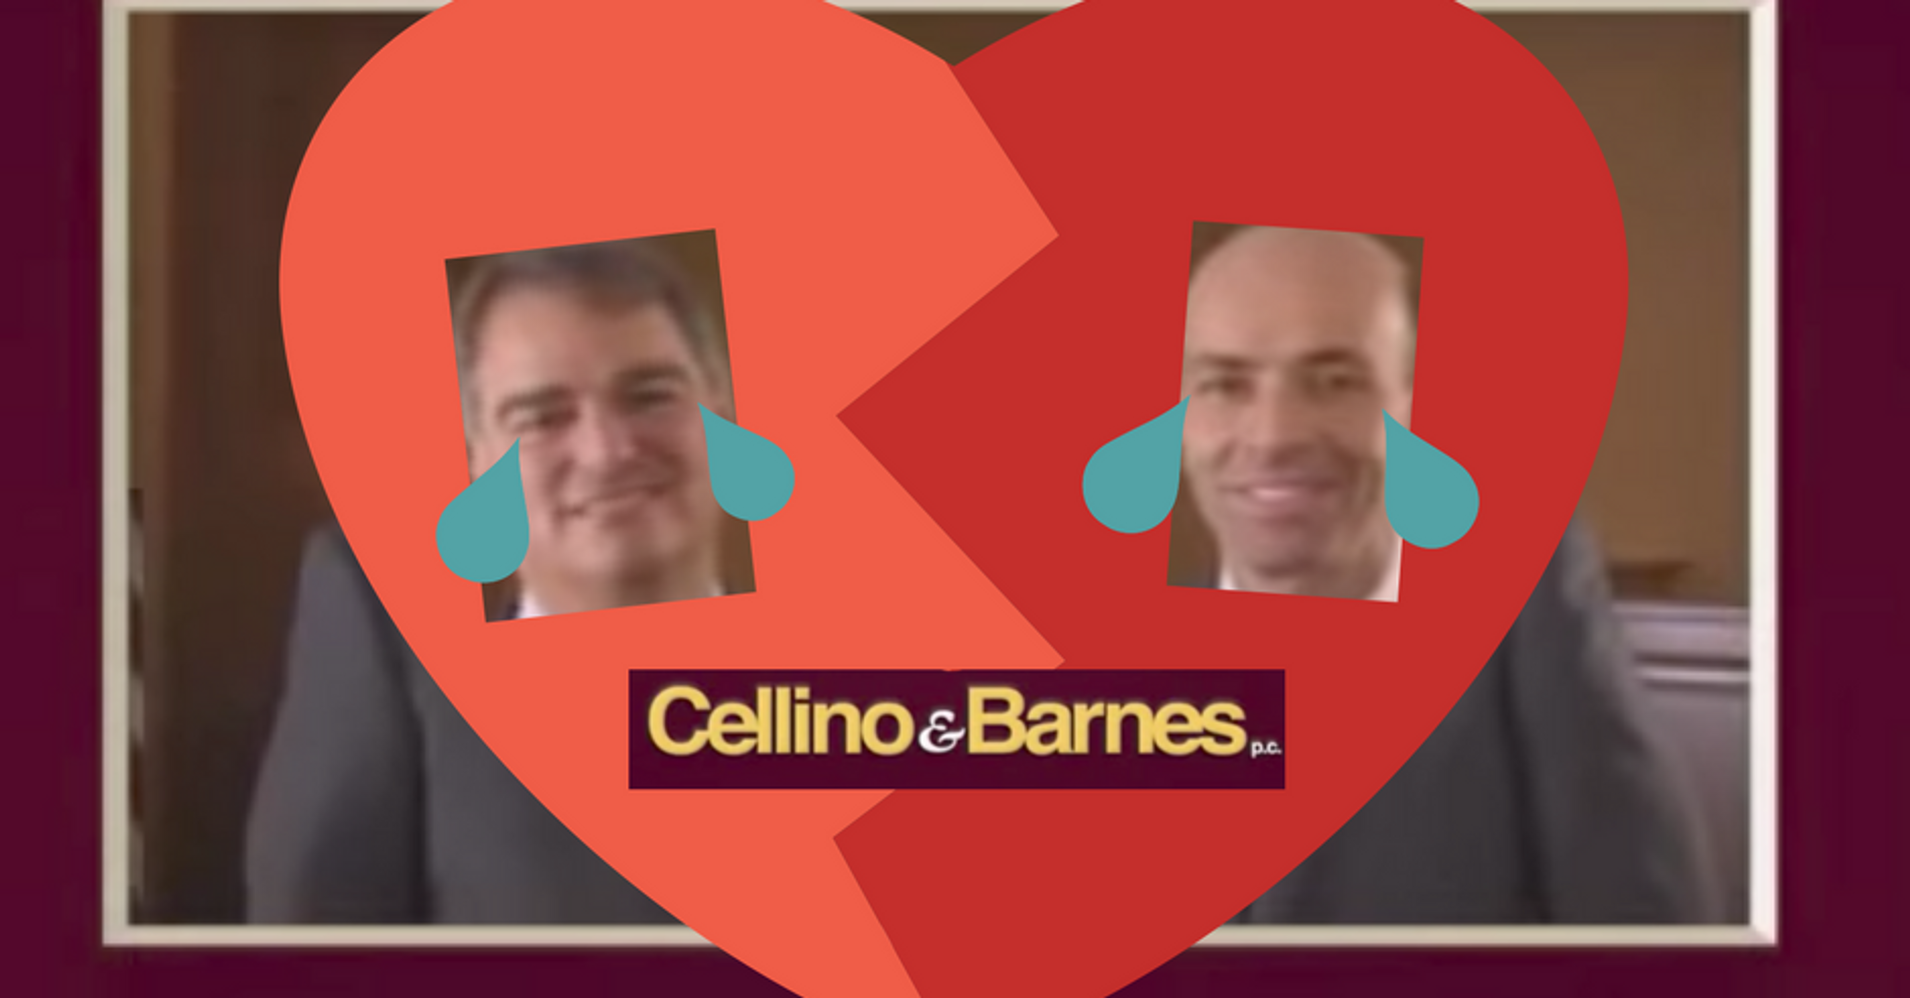 barnes showed and reviews over up cellino hearing half only for of split barns